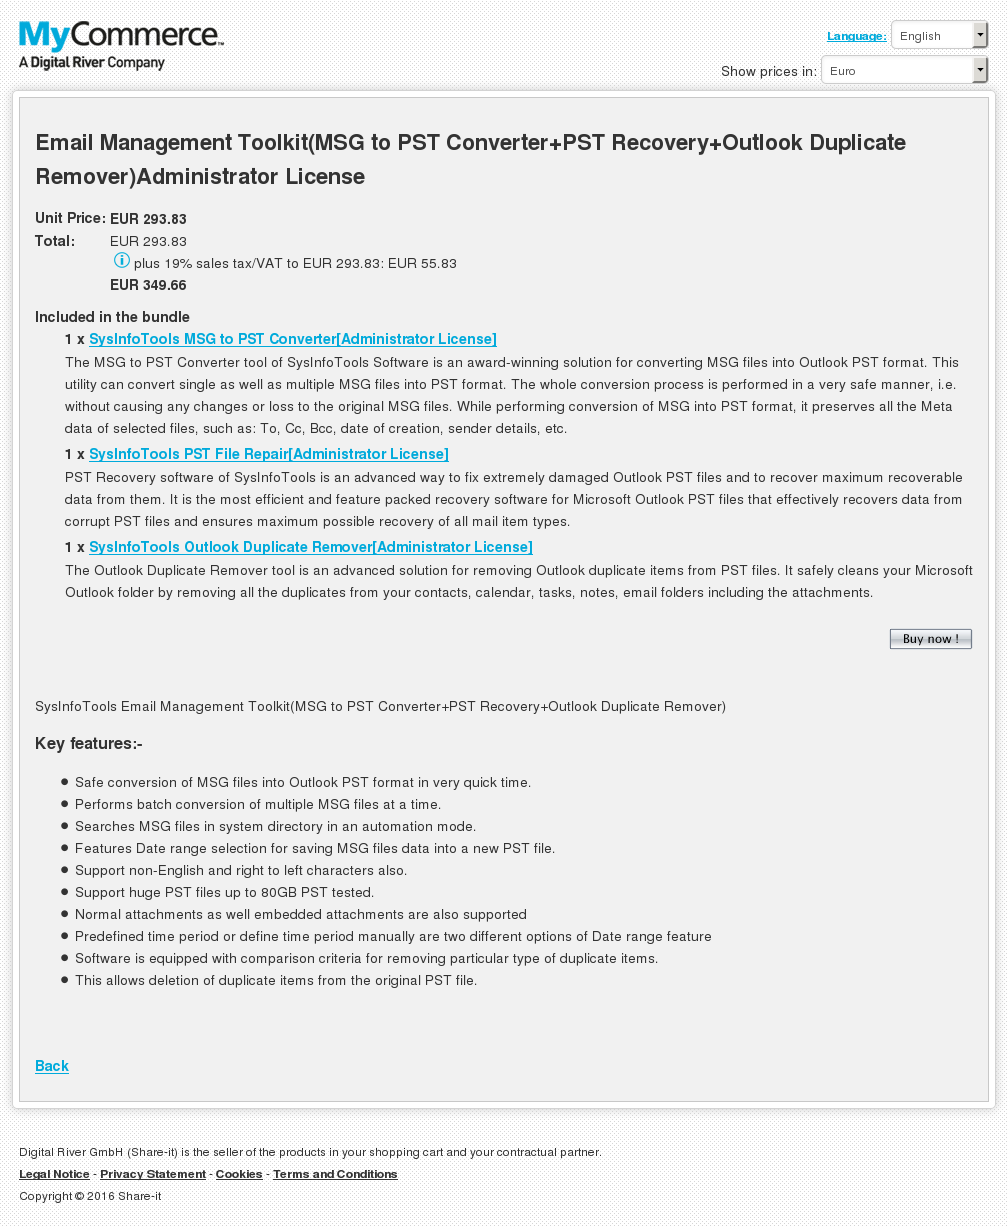 Email Management Toolkit Msg Pst Converter Recovery Outlook Duplicate Remover Administrator License Free